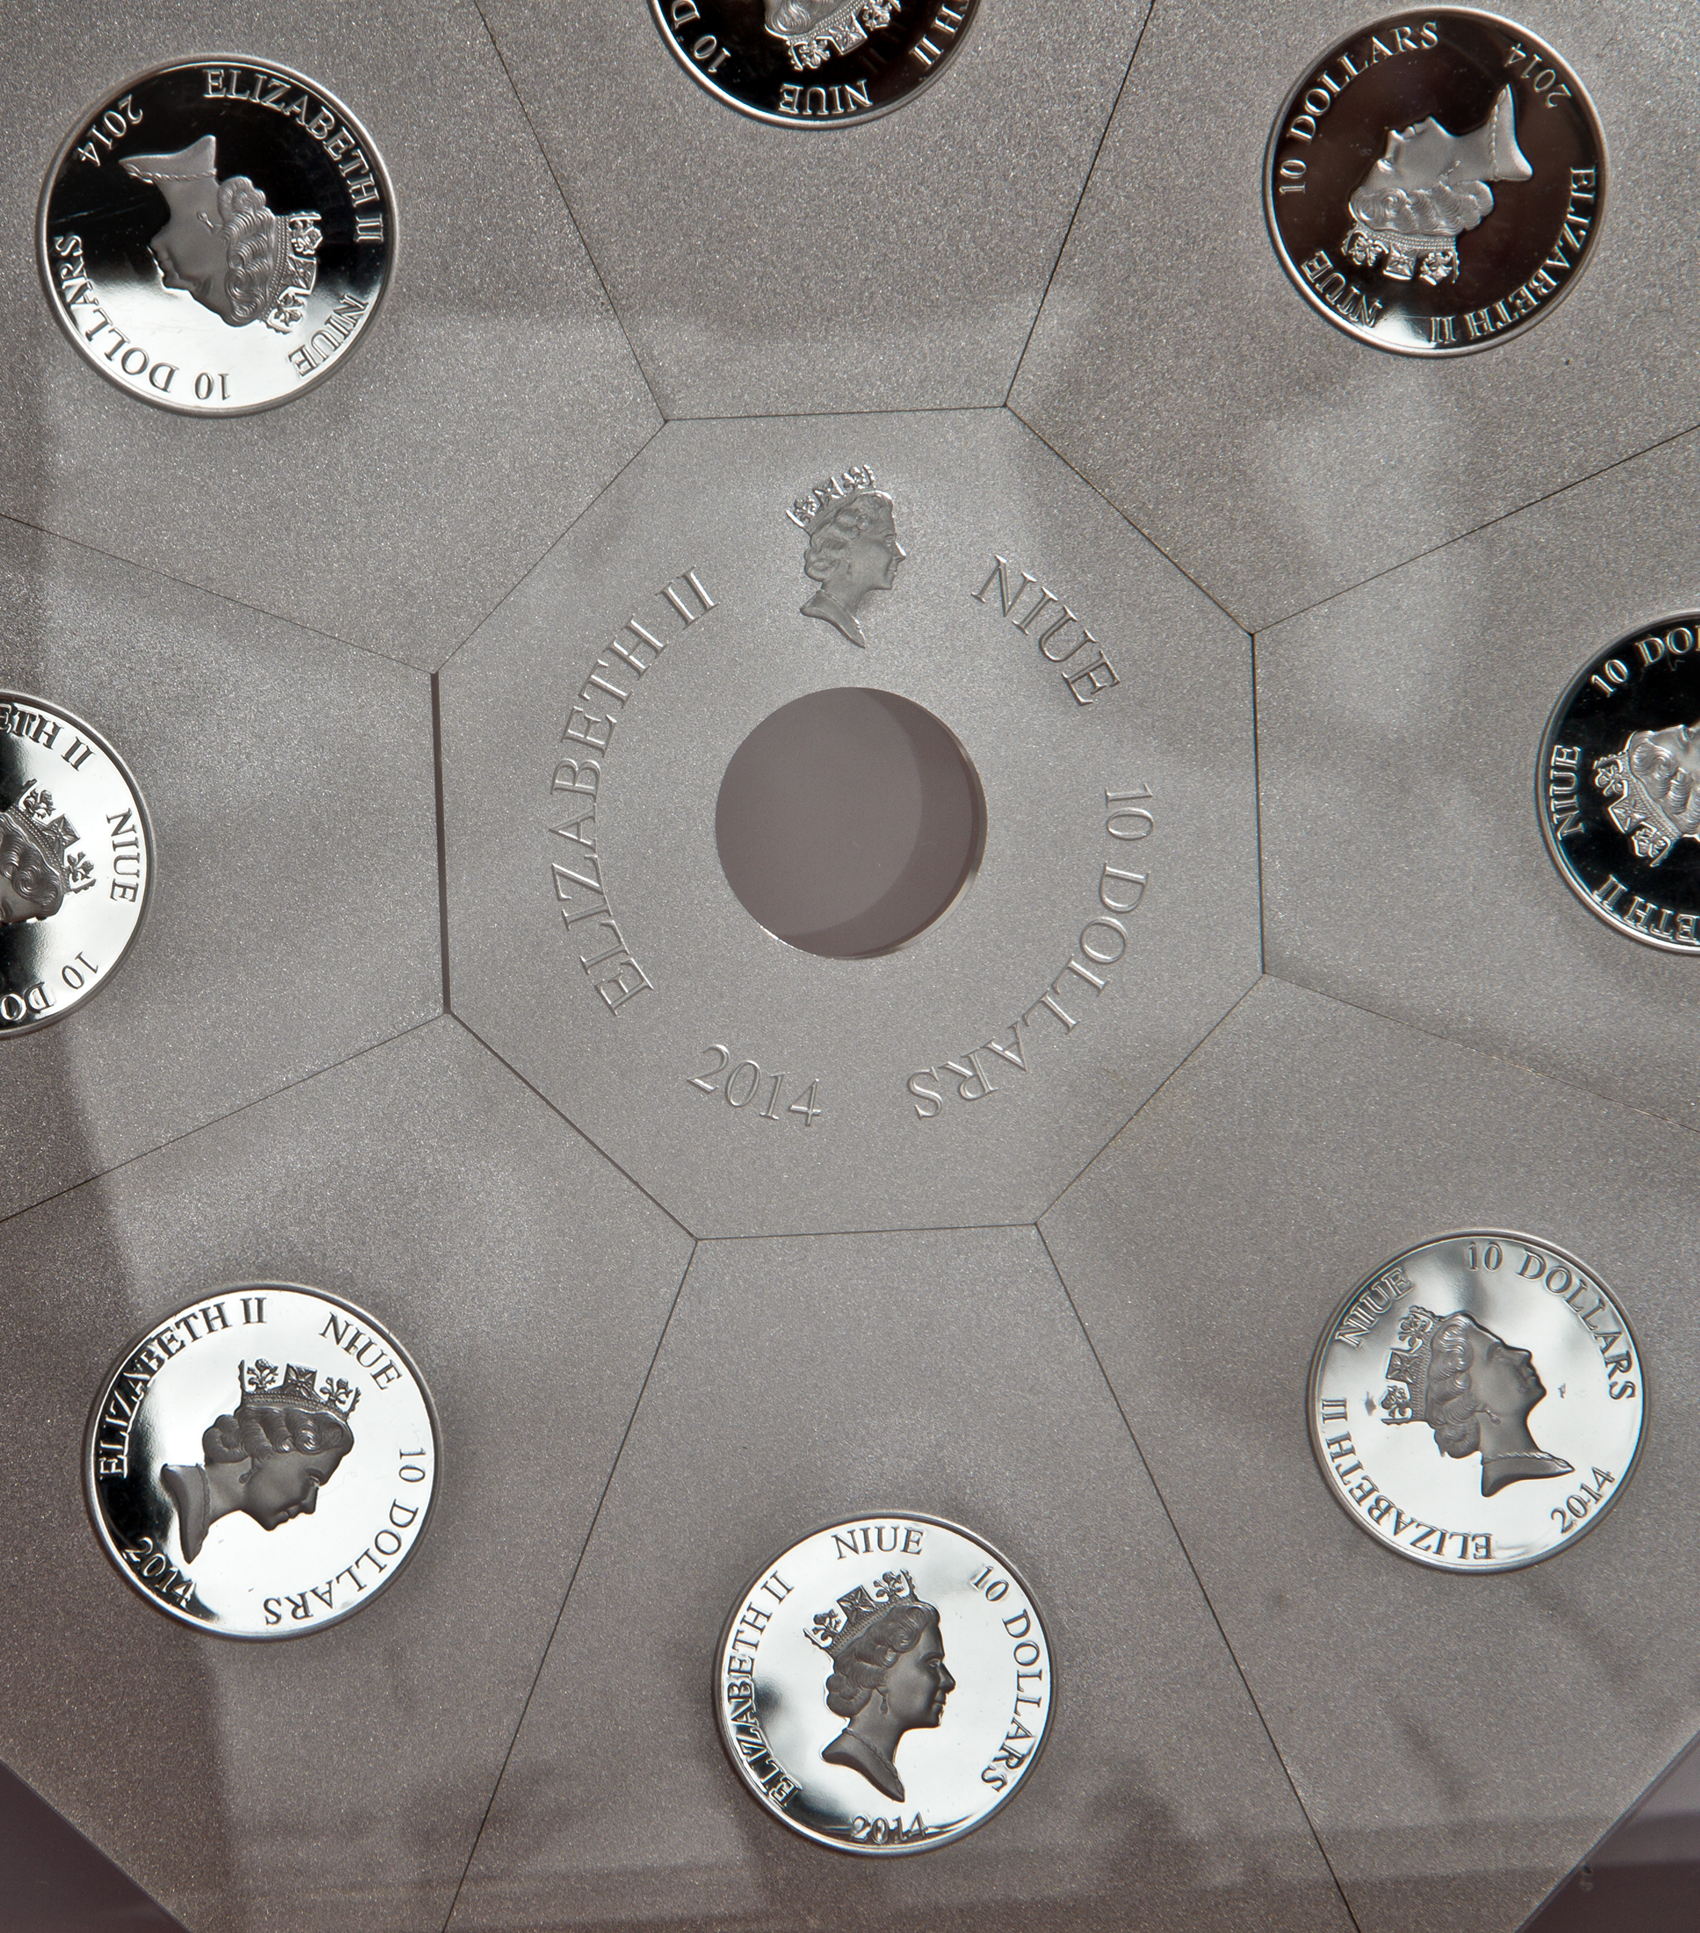 2014 Niue 1 kilo Silver Fresco Under the Dome